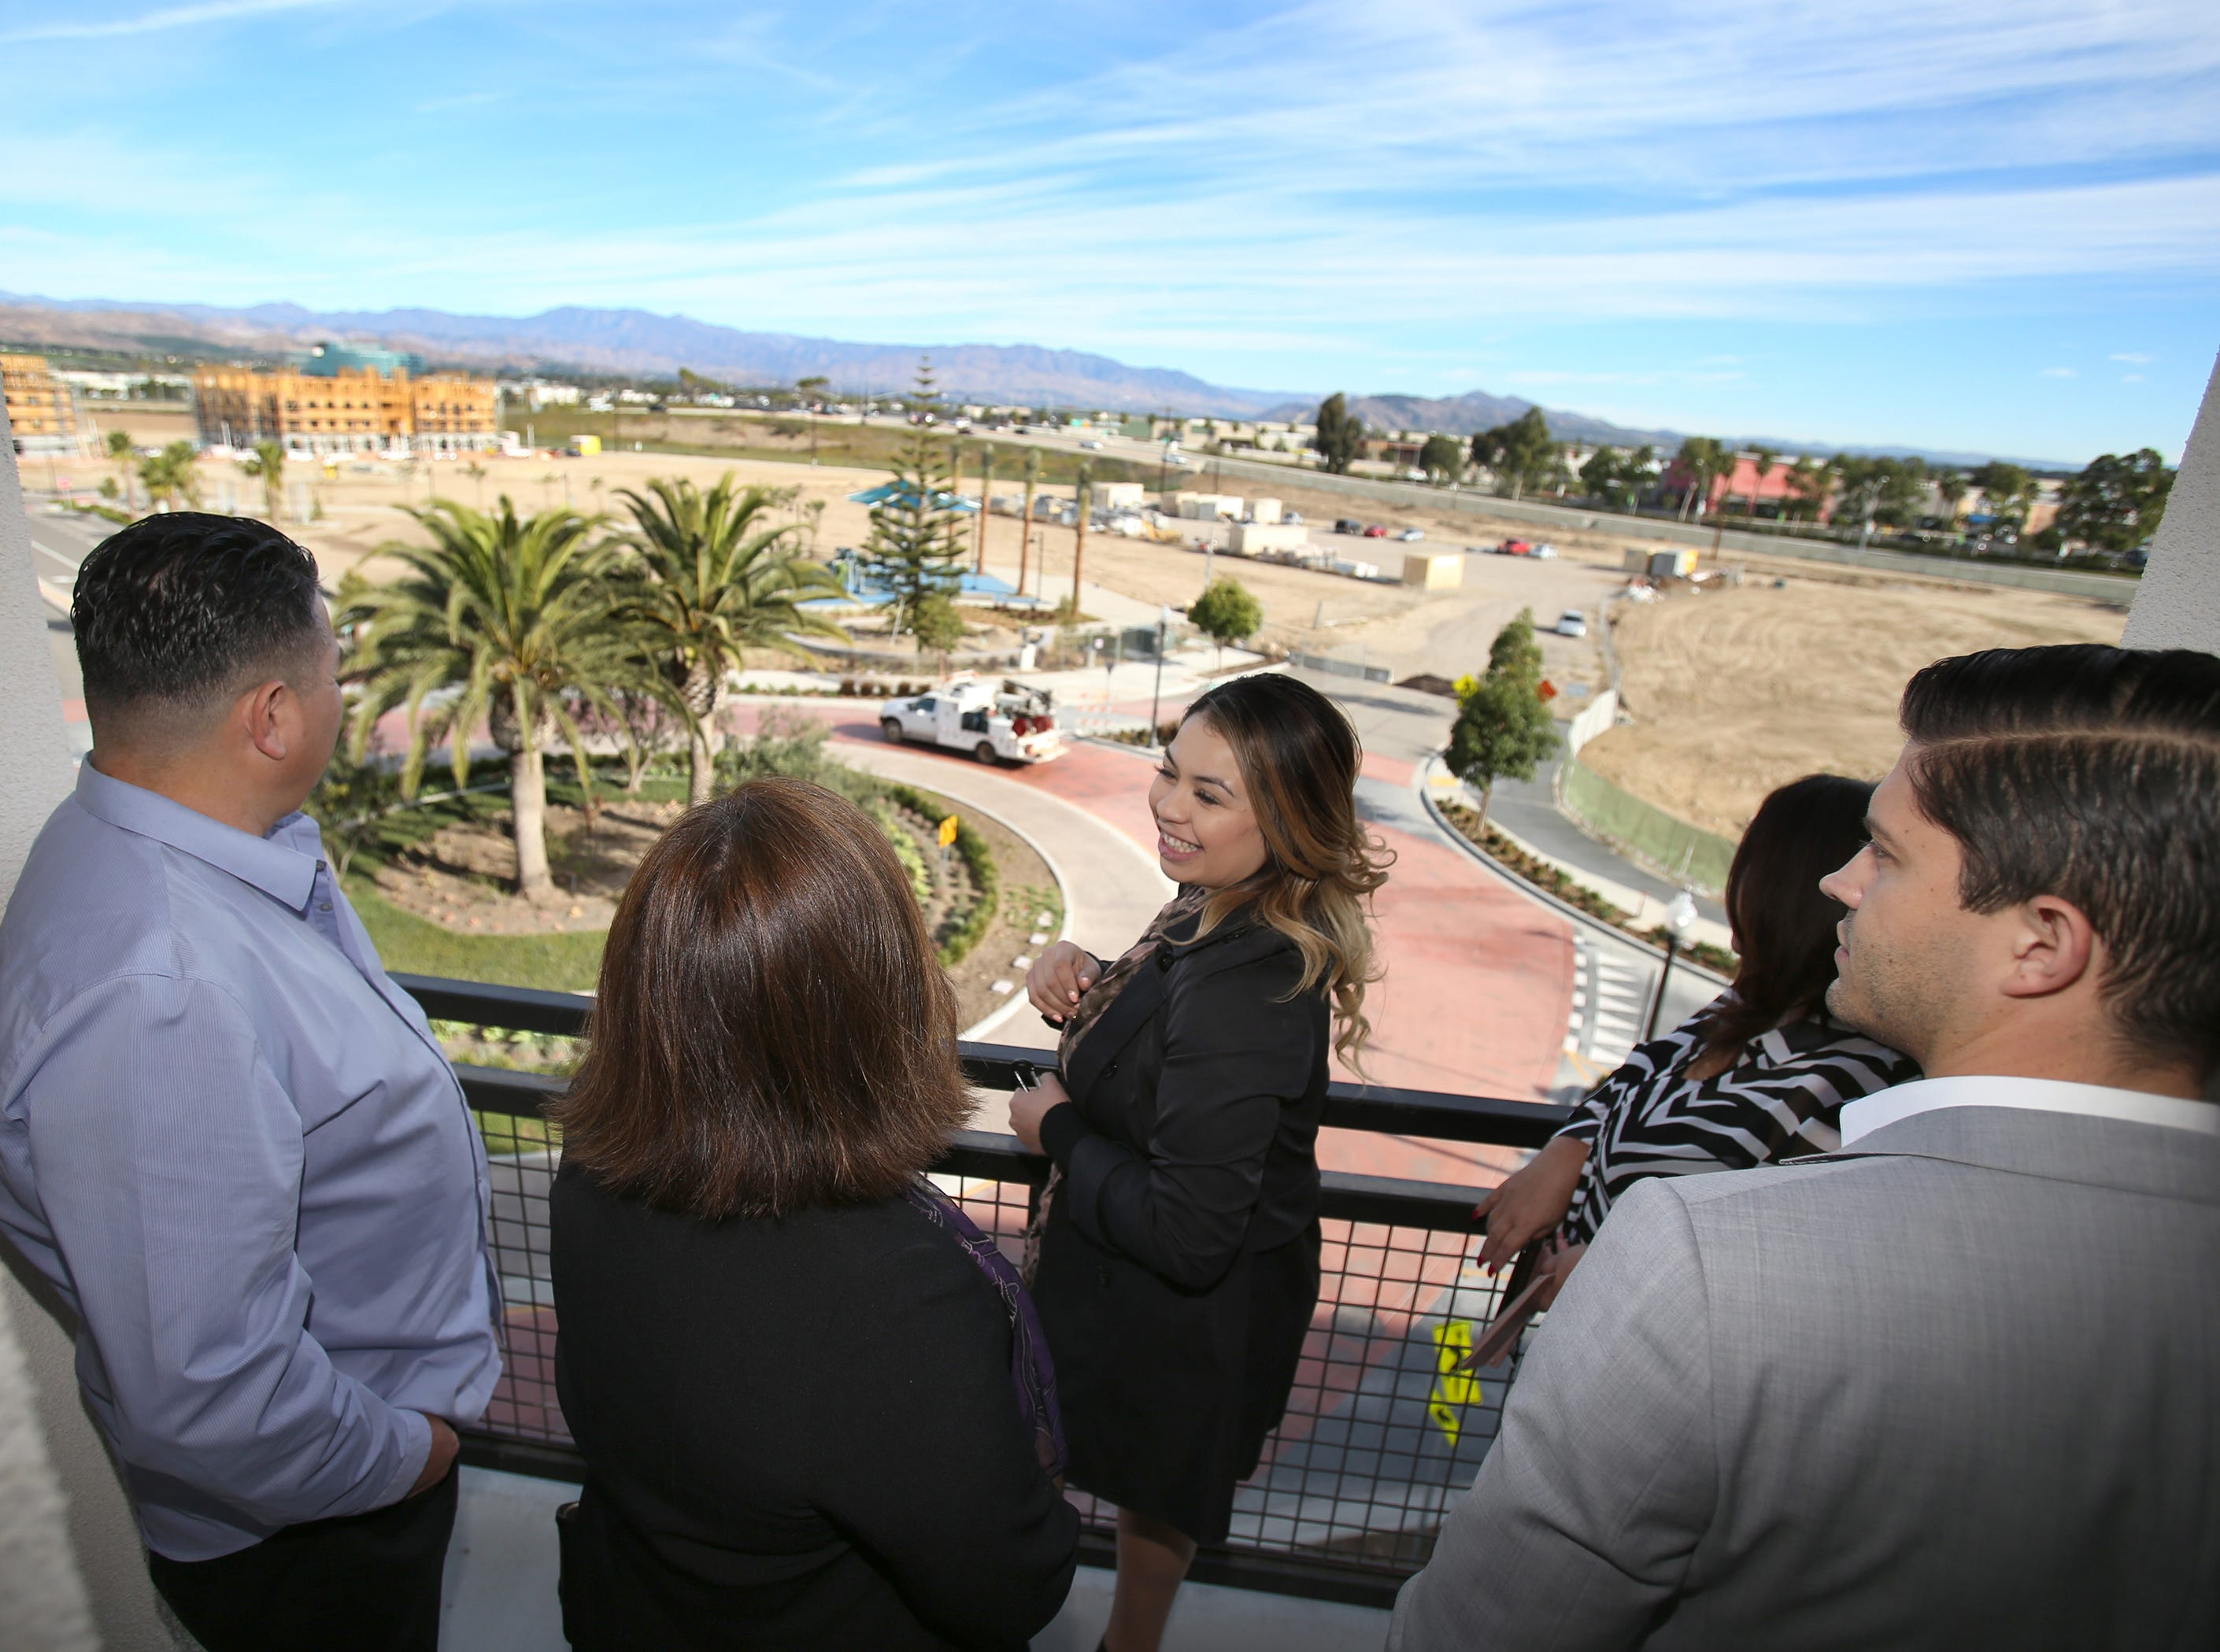 Samantha Martinez, assistant manager for The Junction at the Wagon Wheel, shows guests the view from one of its fourth-floor units. The new apartment complex began renting in Ocotber.